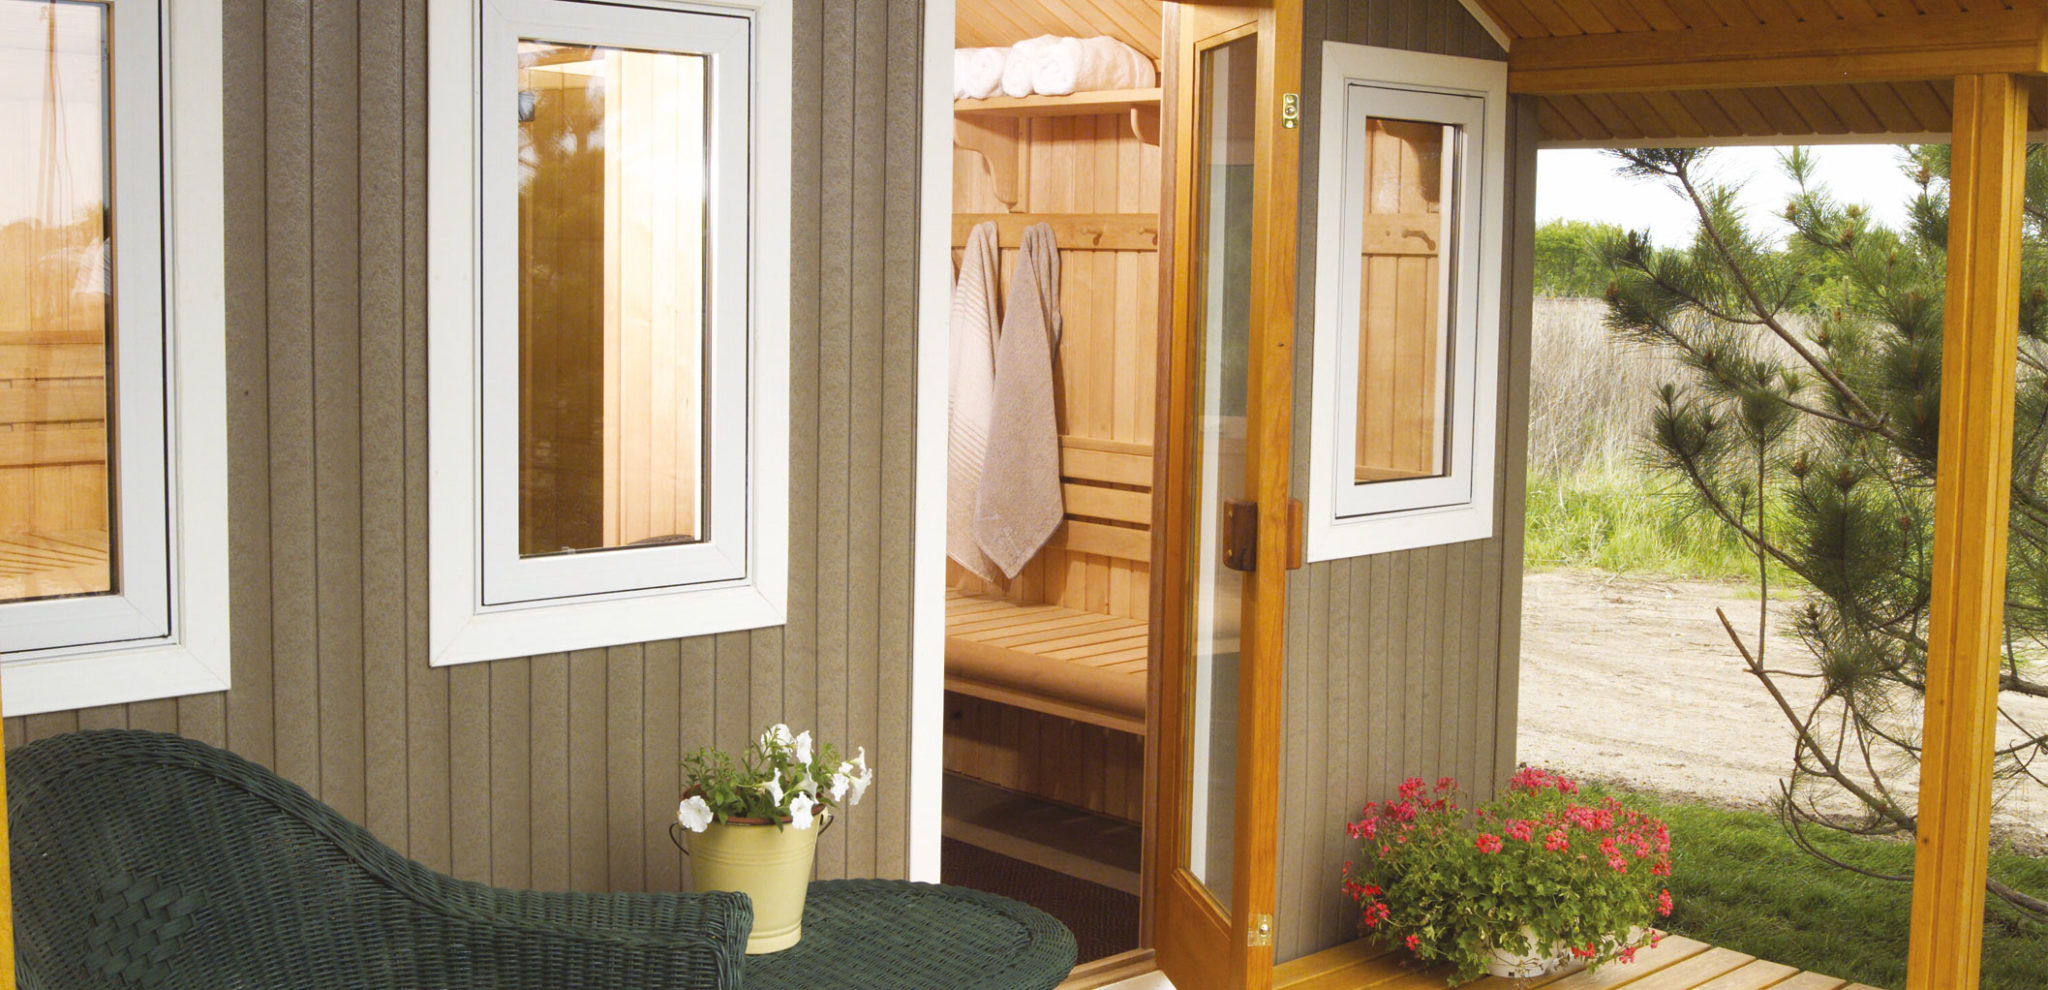 Saunatec Finnelo Metro Outdoor Sauna outside home on patio with windows spa brokers